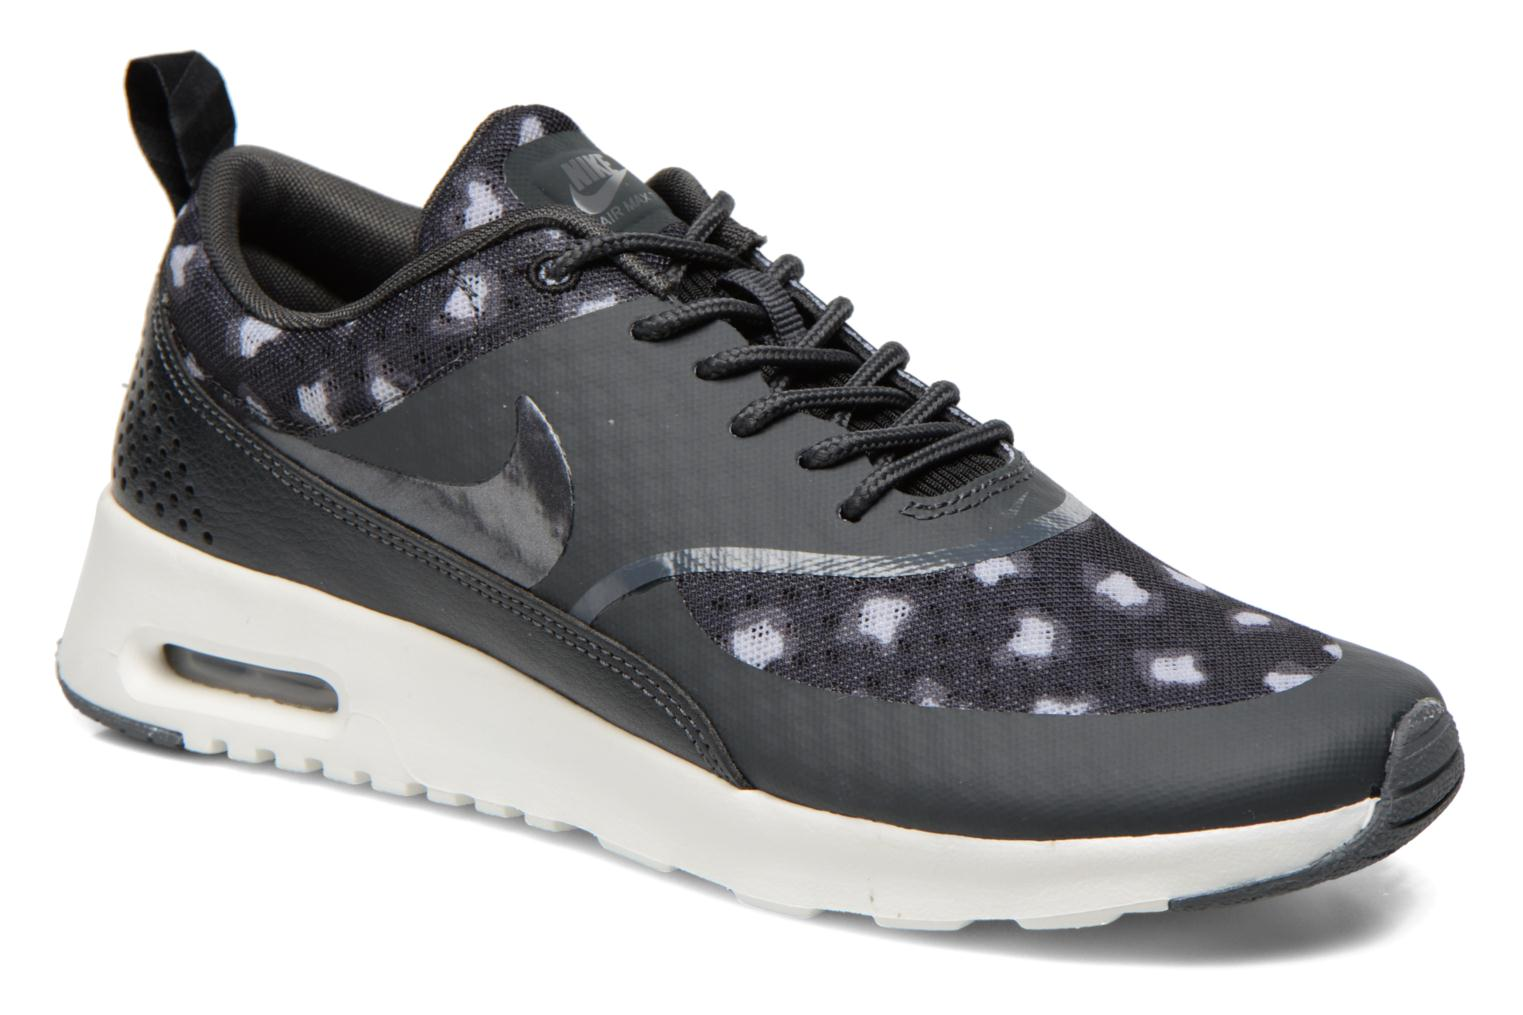 Wmns Nike Air Max Thea Print Black/Drk Grey-Anthrct-Wlf Gry